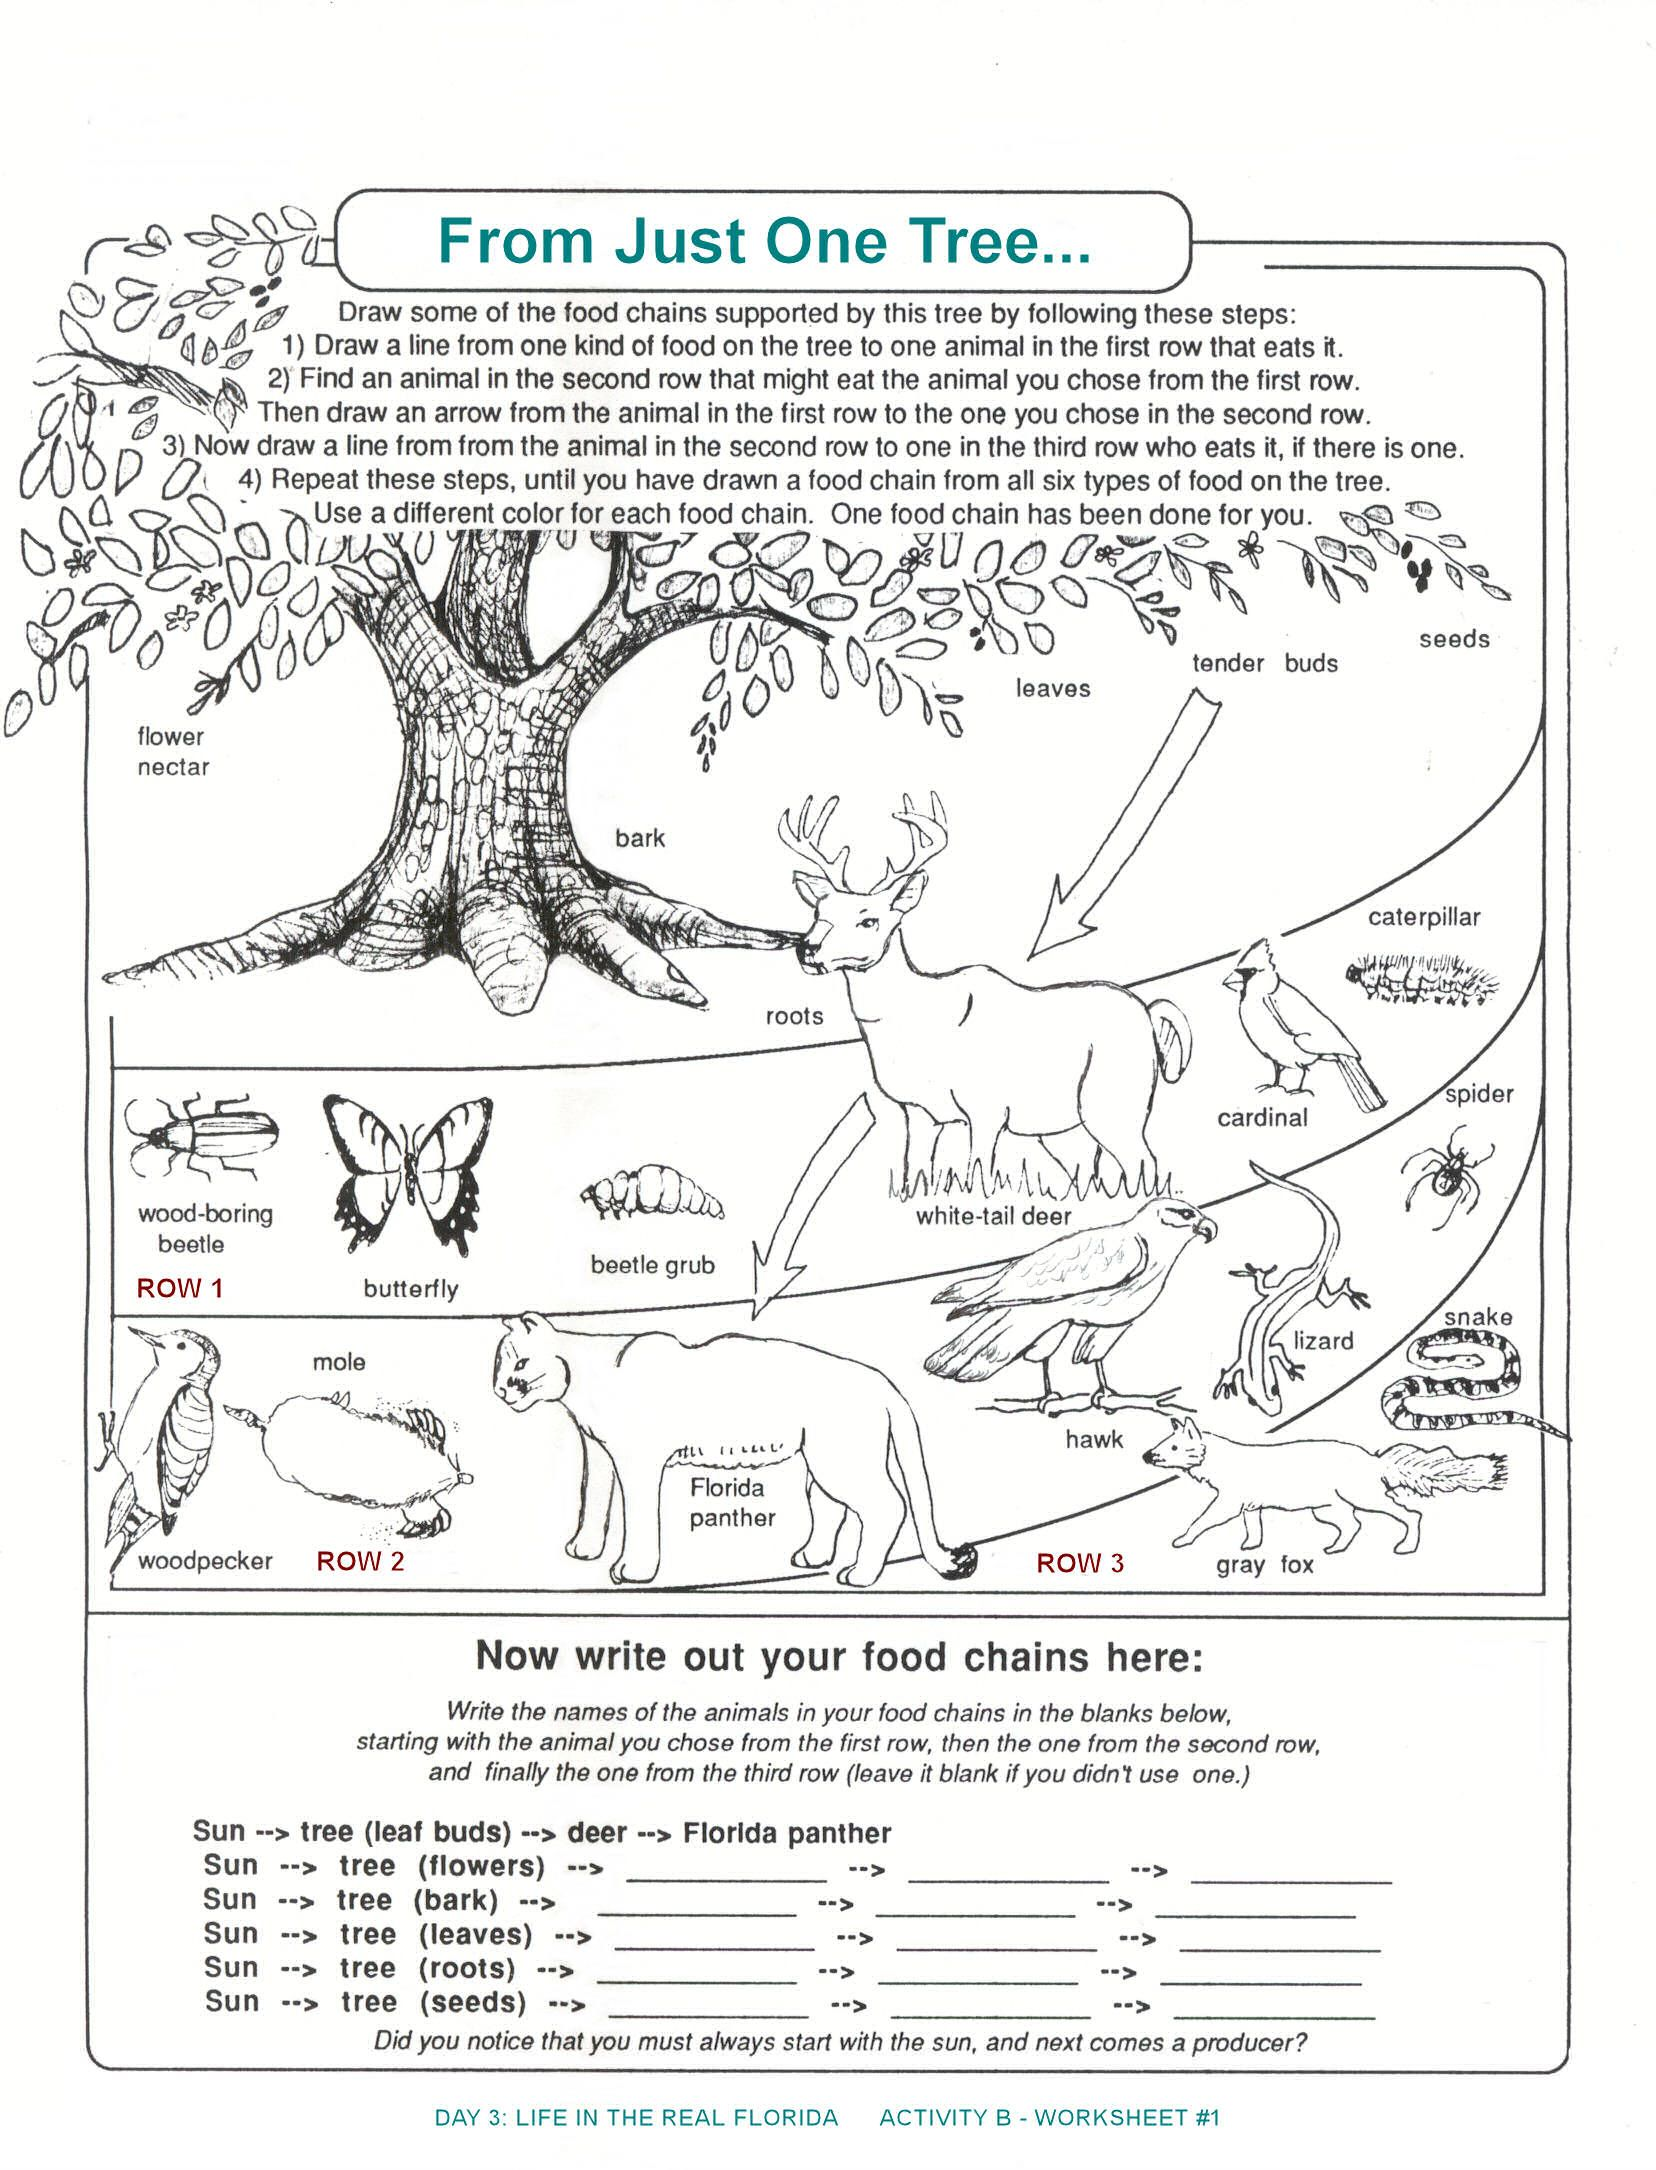 worksheets for kids Archbold Biological